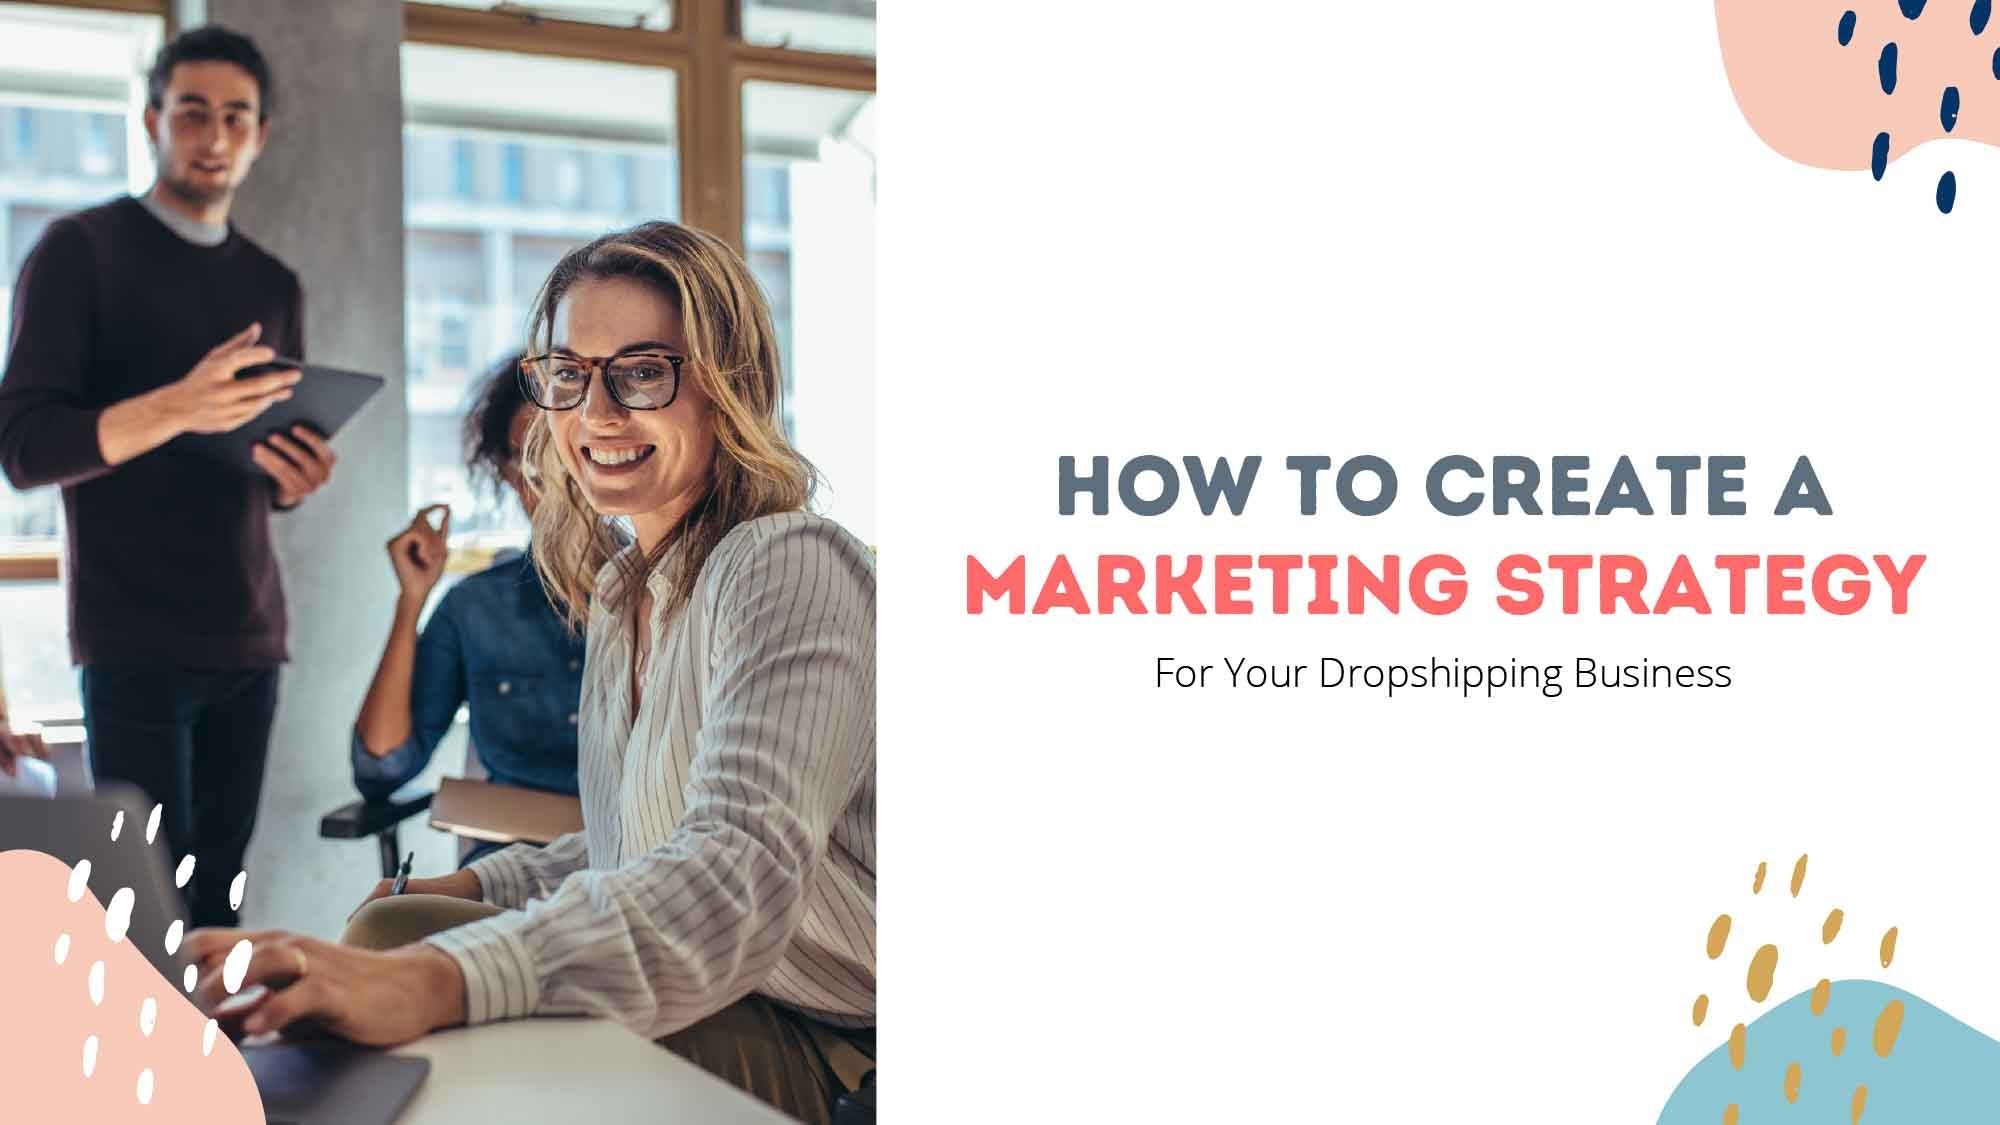 How To Create A Marketing Strategy For Your Dropshipping Business!